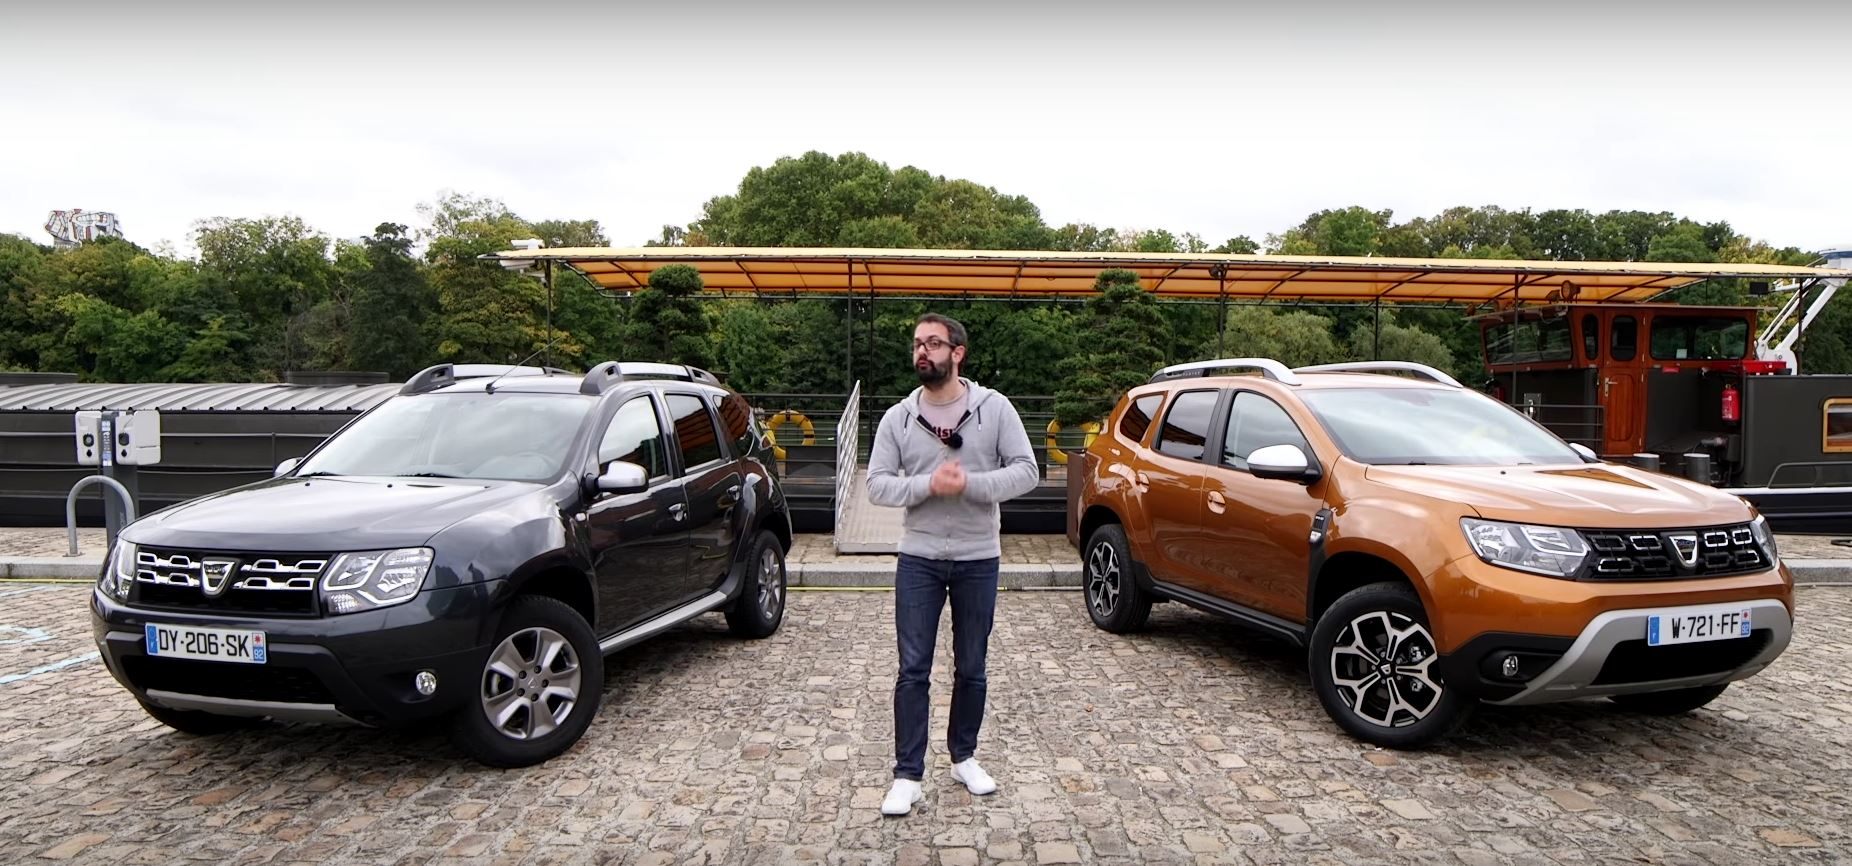 2018 dacia duster faces its predecessor in first review autoevolution. Black Bedroom Furniture Sets. Home Design Ideas